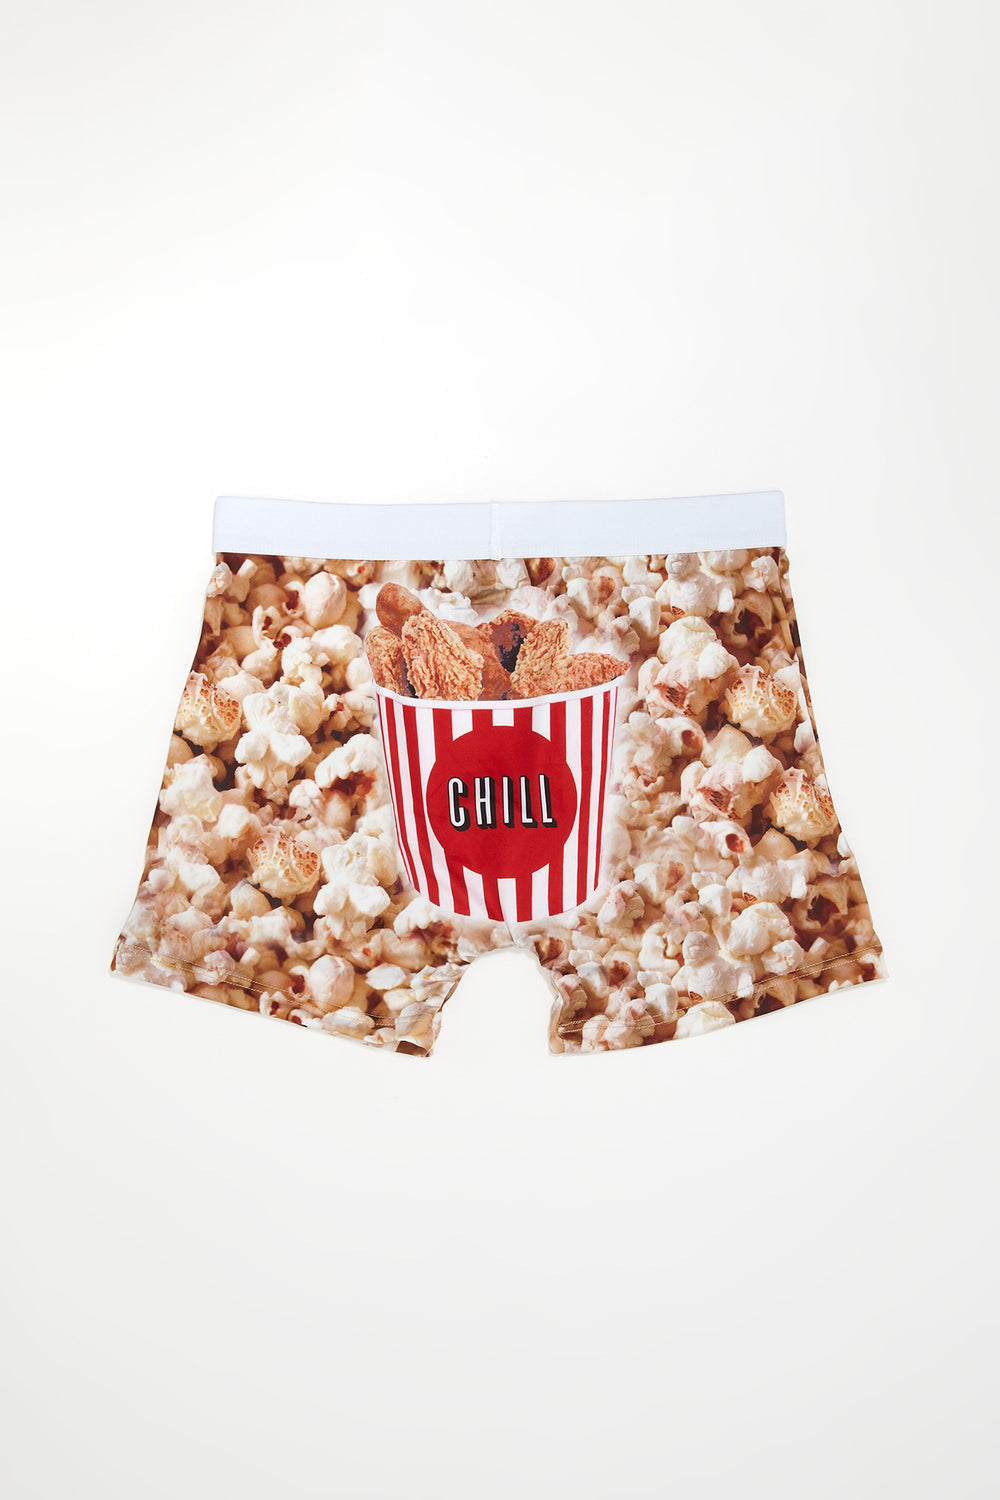 Undz Mens Popcorn & Chicken Fingers Boxer Brief White